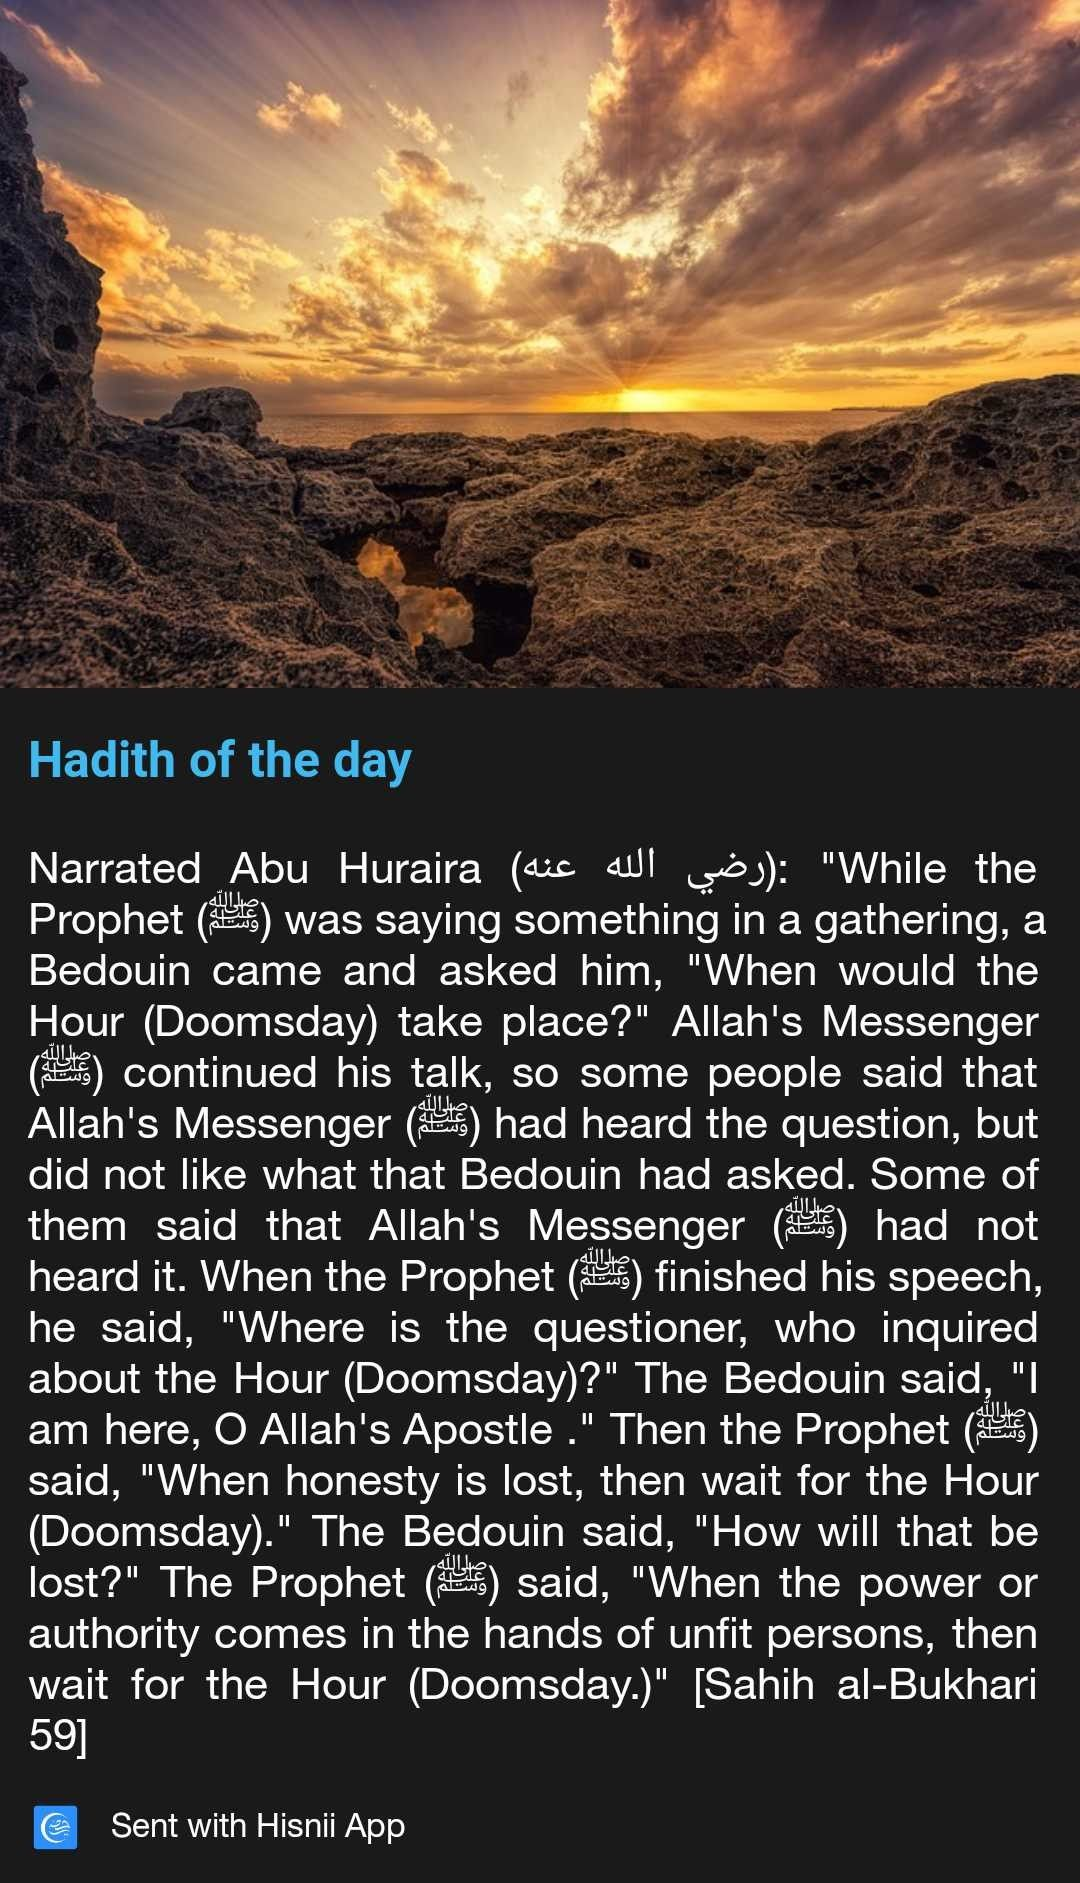 Hadith, day of judgement, Islam (With images) Hadith of